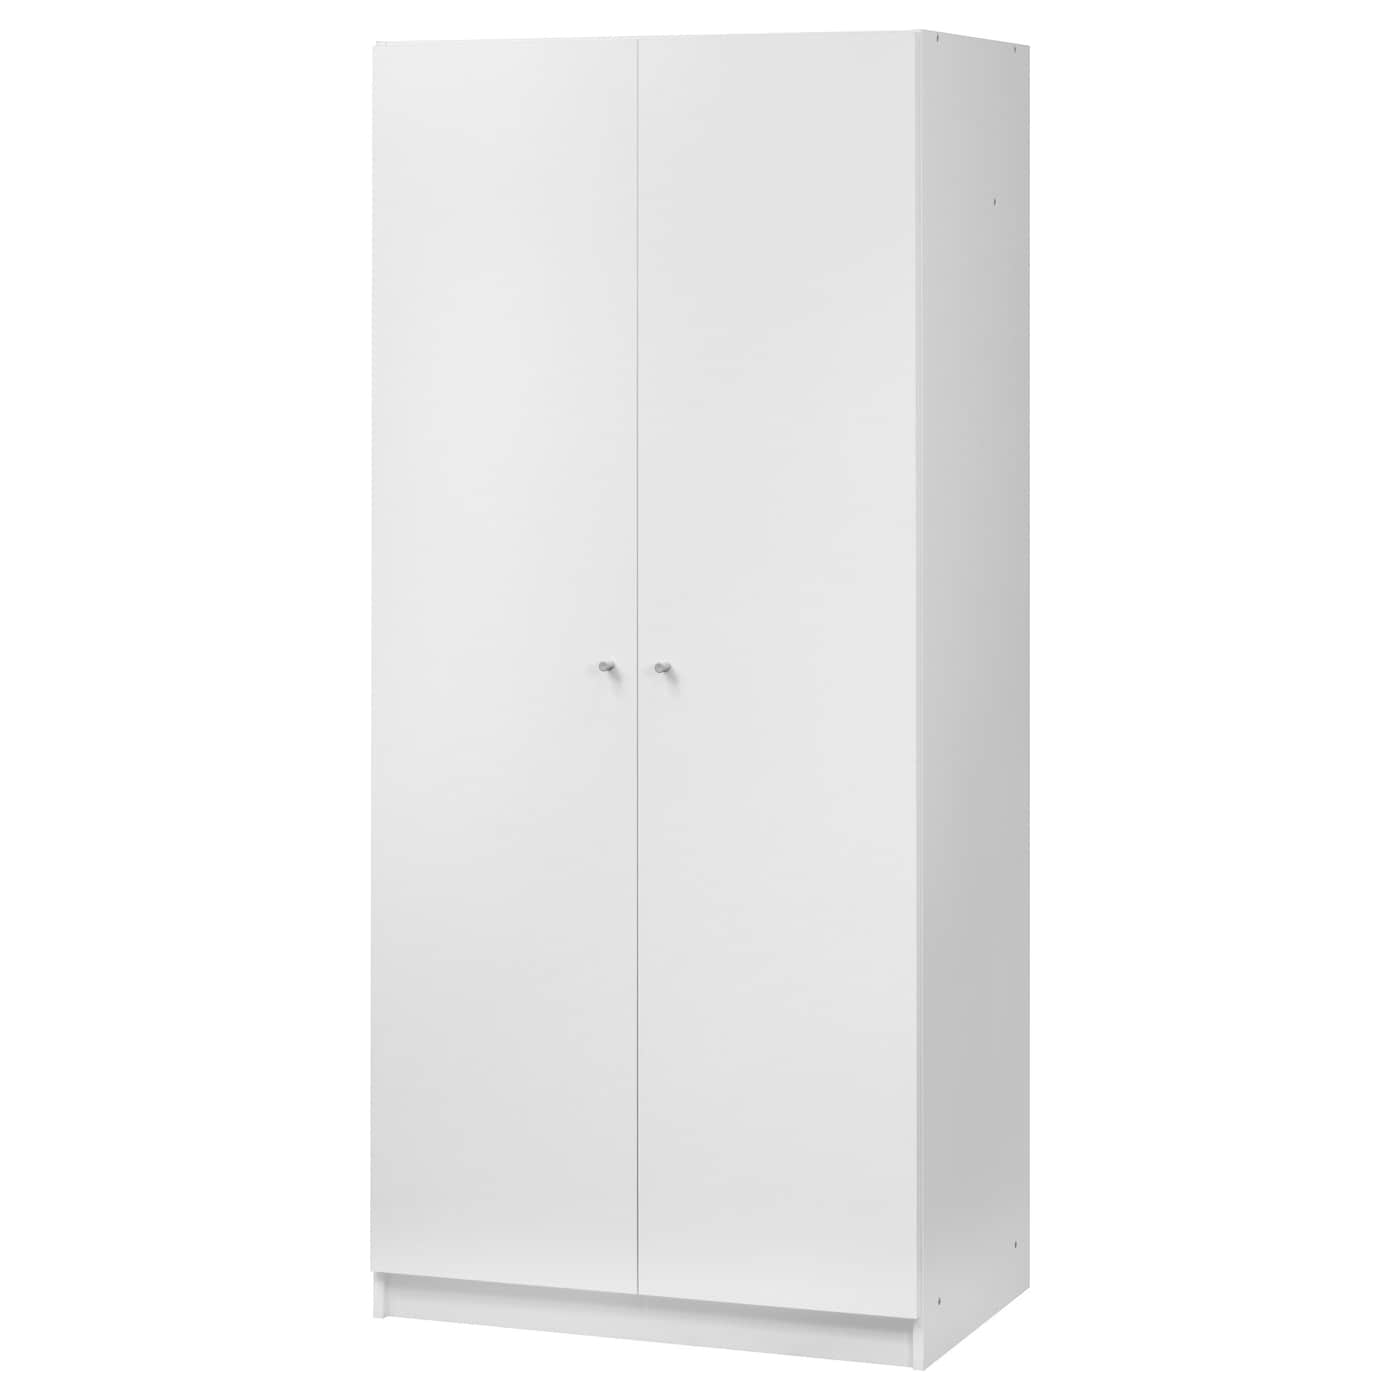 Bostrak wardrobe white 80x50x180 cm ikea for Meuble armoire